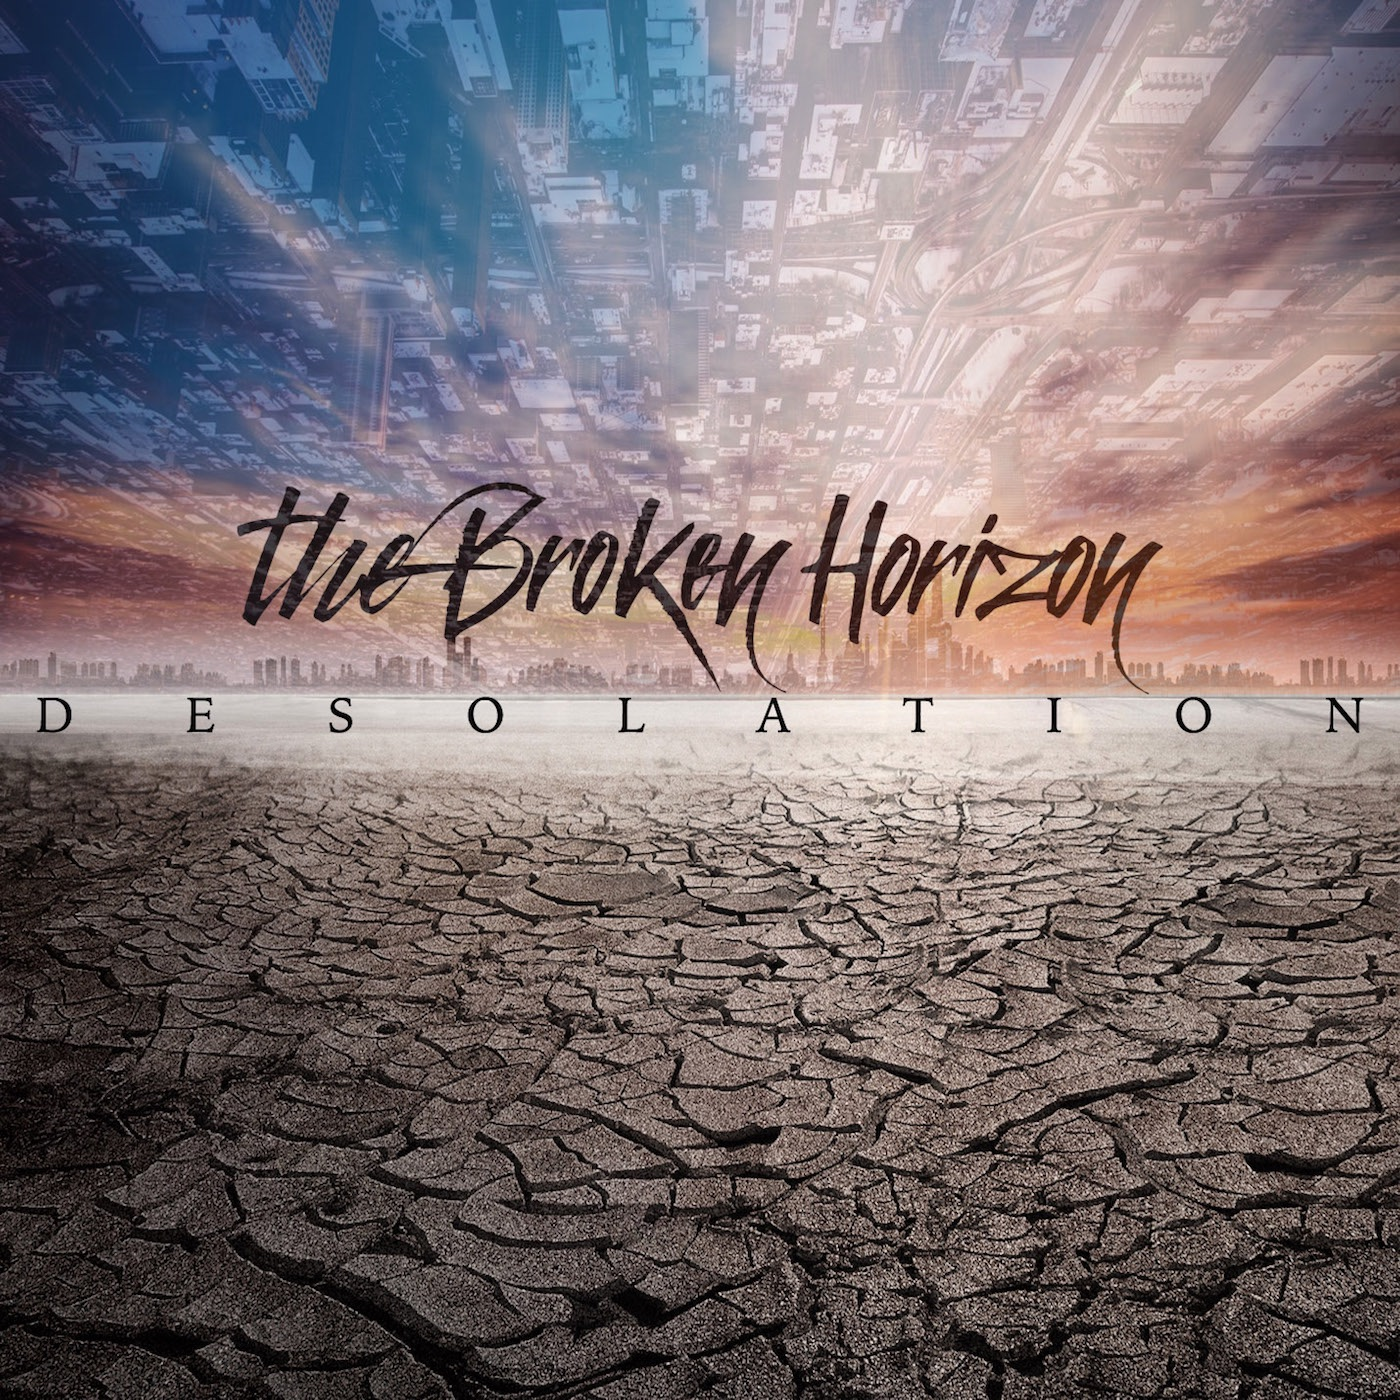 The Broken Horizon - Desolation (2018)